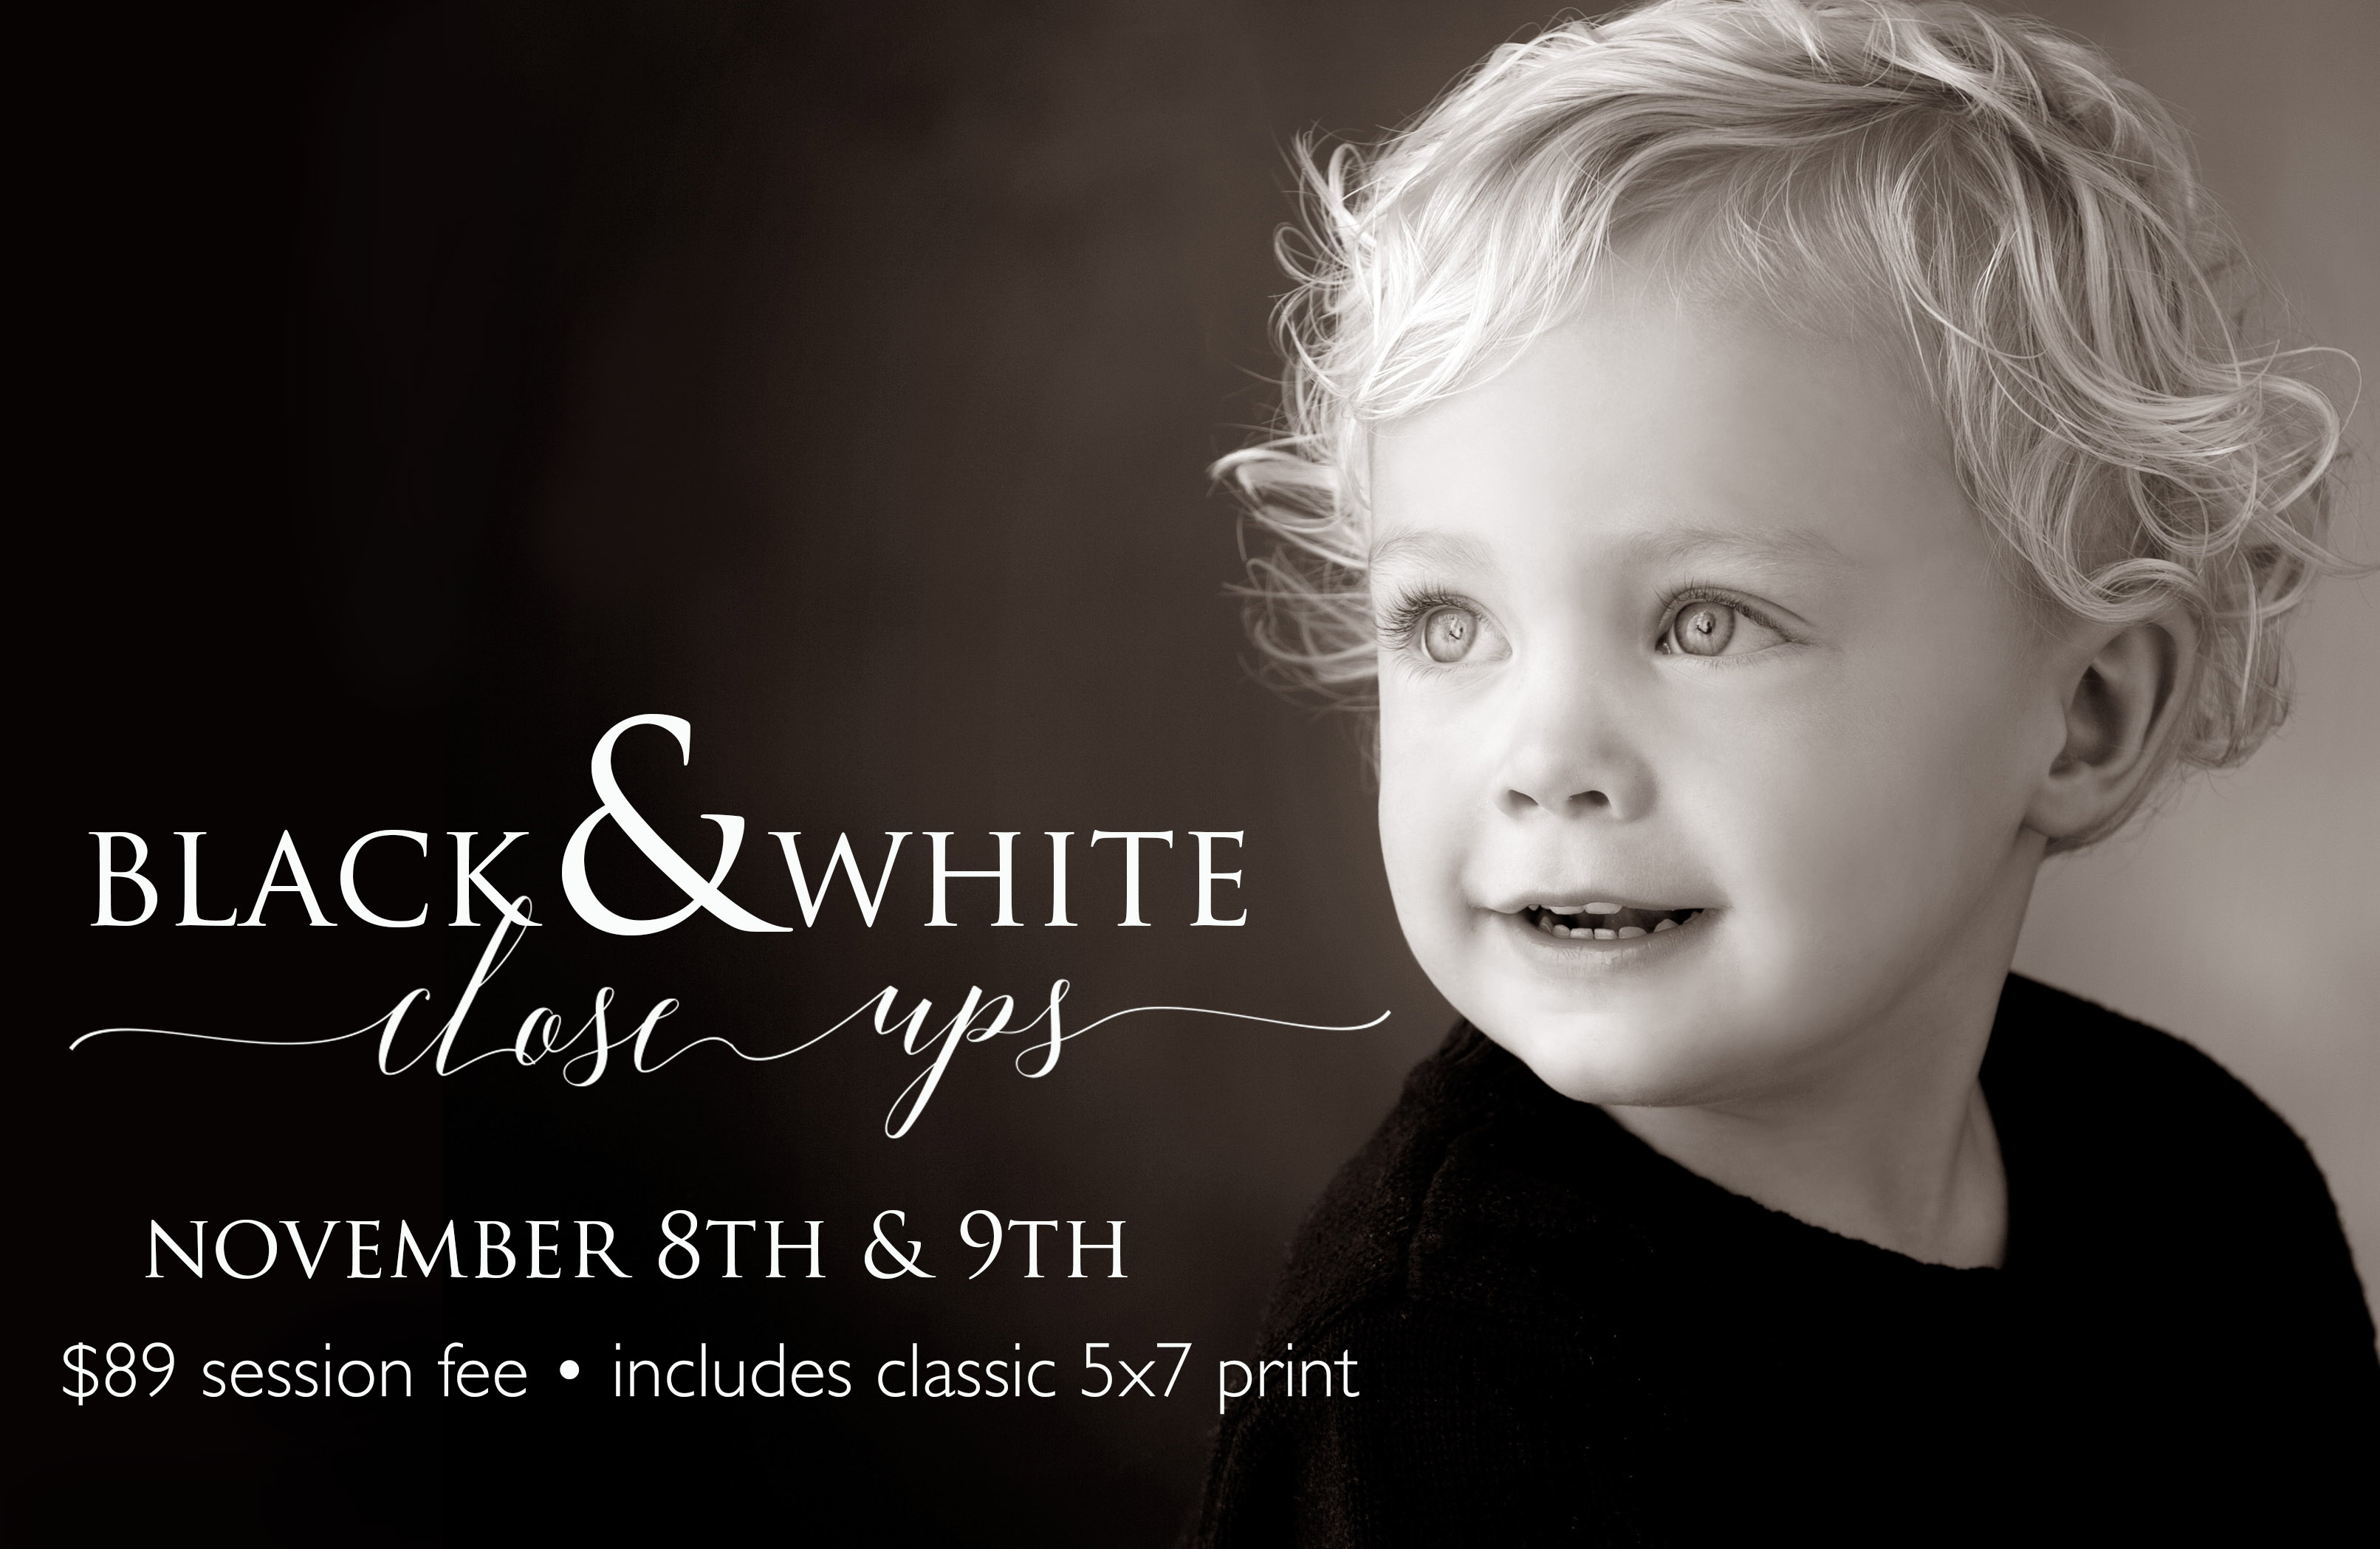 Children's Day Special, Black & White Close-ups